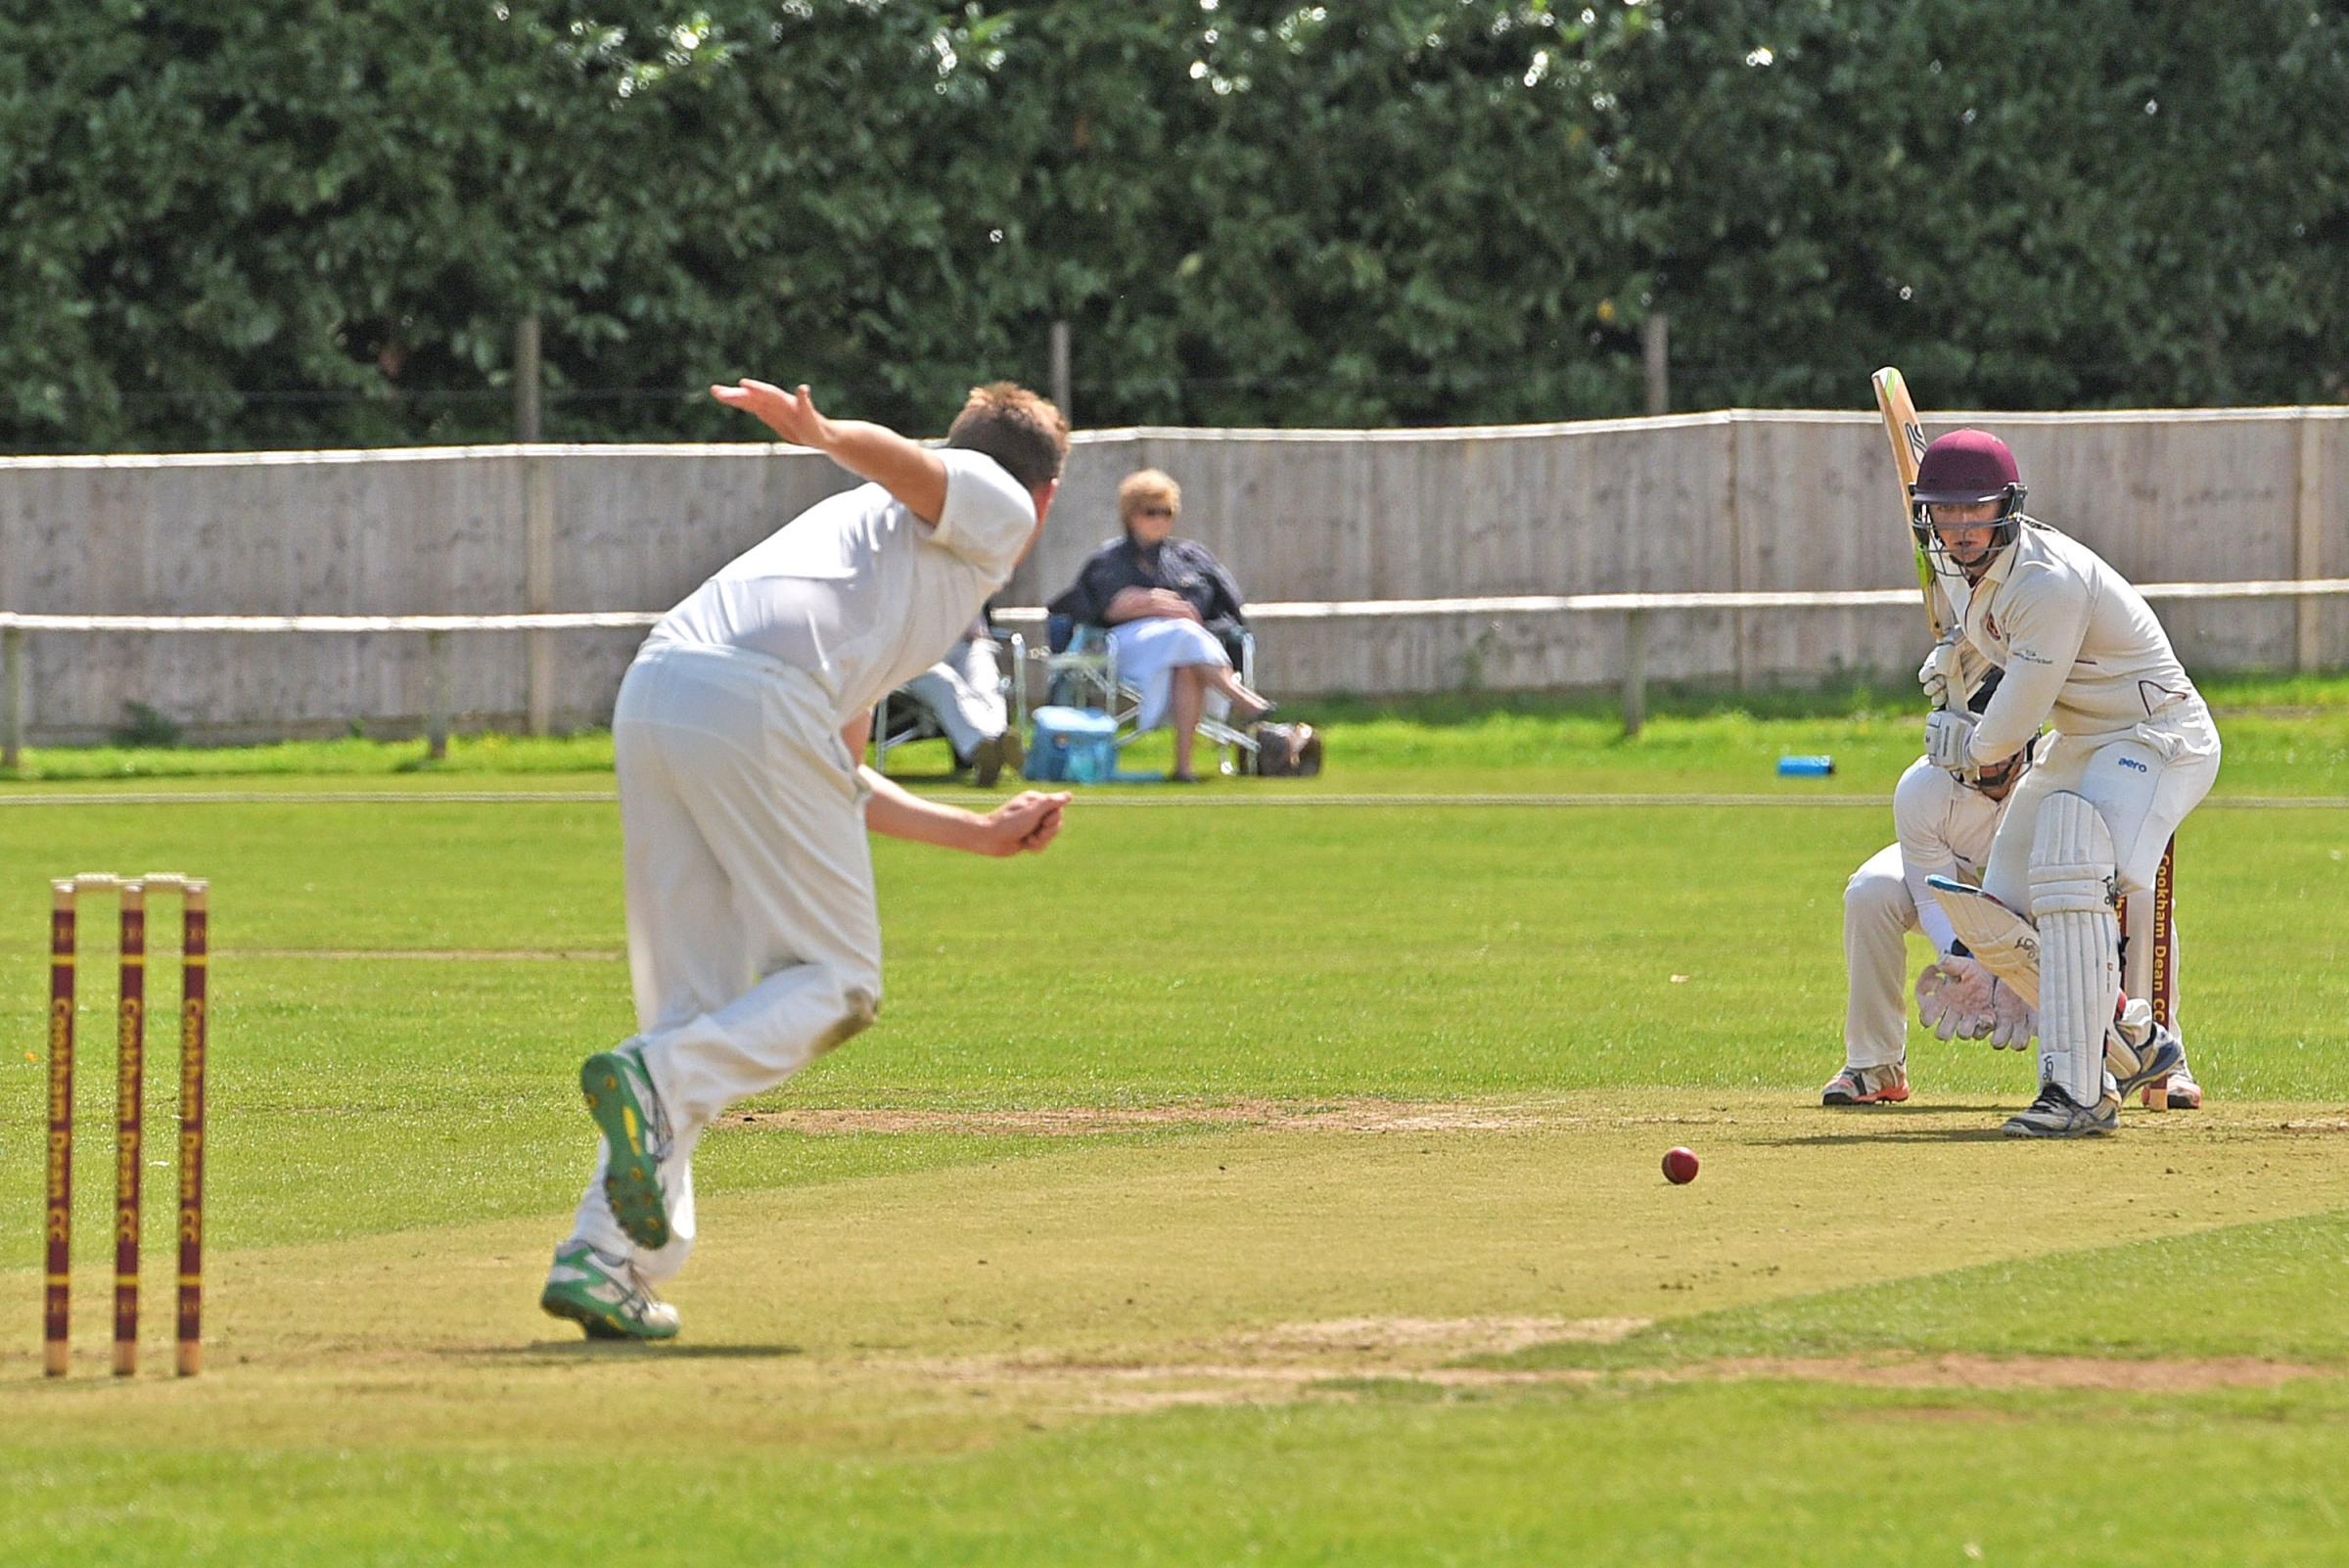 Wokingham (bowling) beat Cookham Dean by four wickets to move 50 points clear at the top